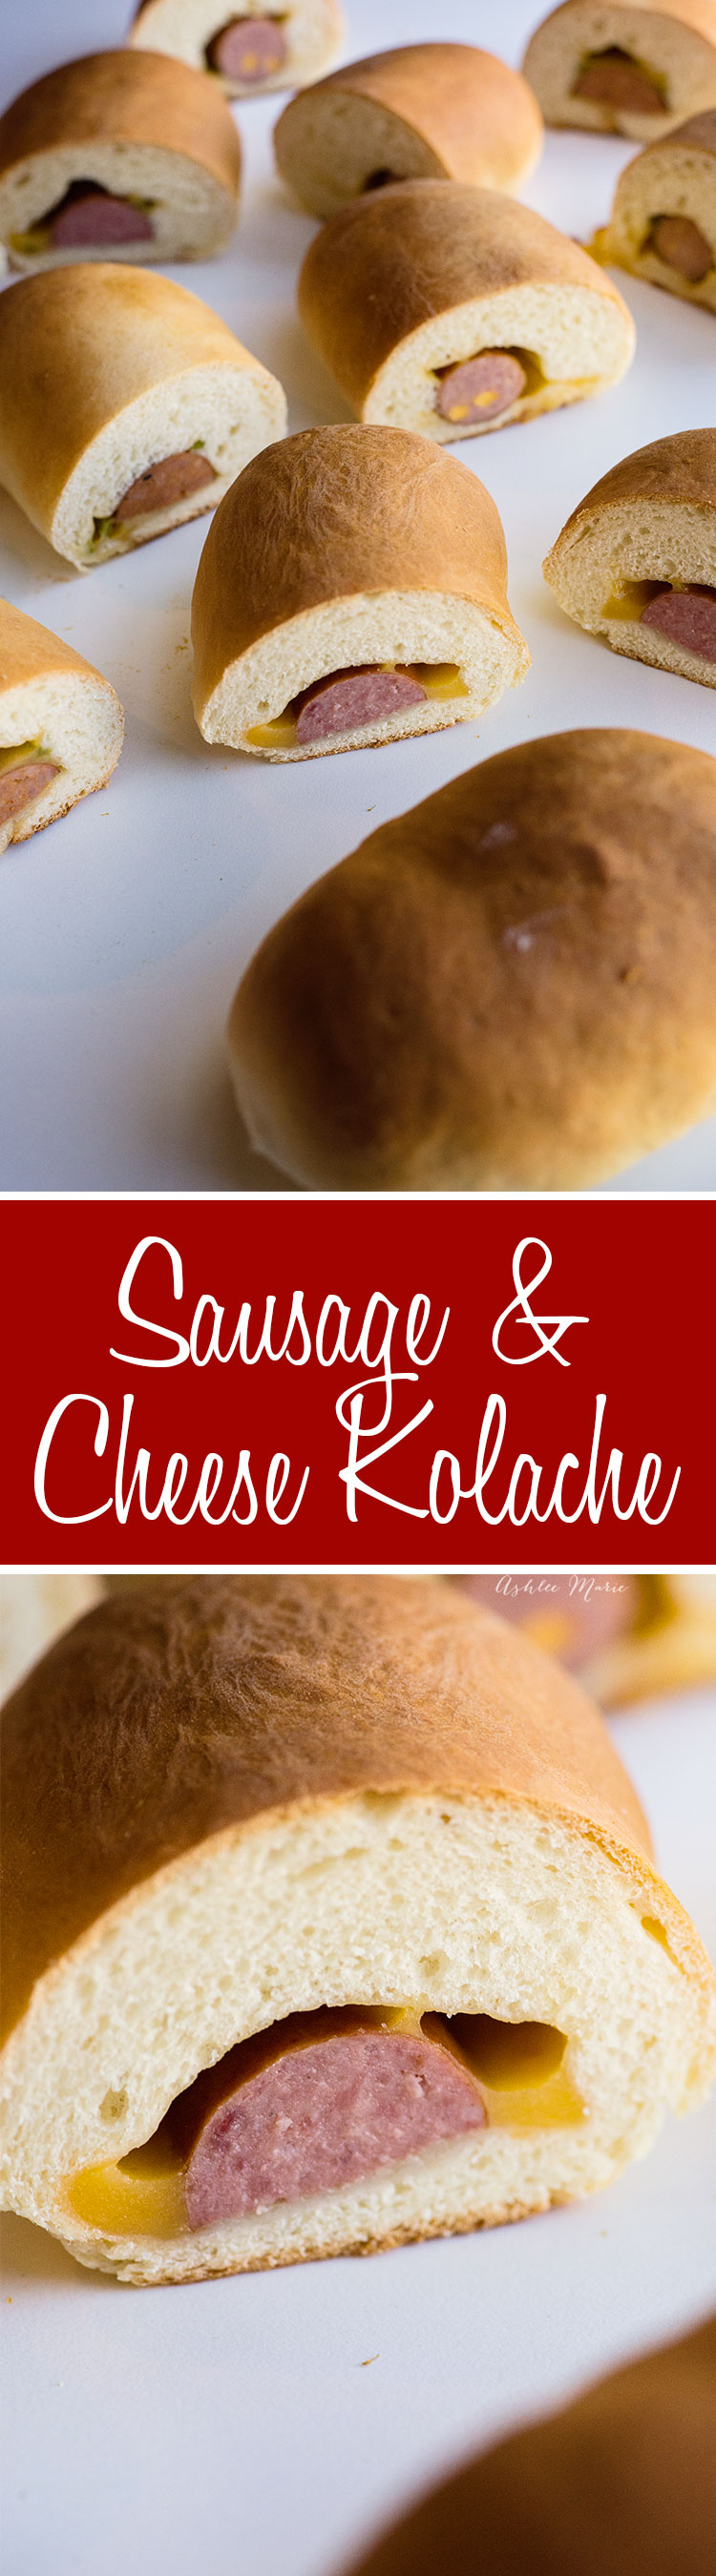 a family favorite - these sausage and cheese kolache are easy to make and taste amazing - a sweet dough wrapped around your favorite mean and cheese, full recipe with video tutorial